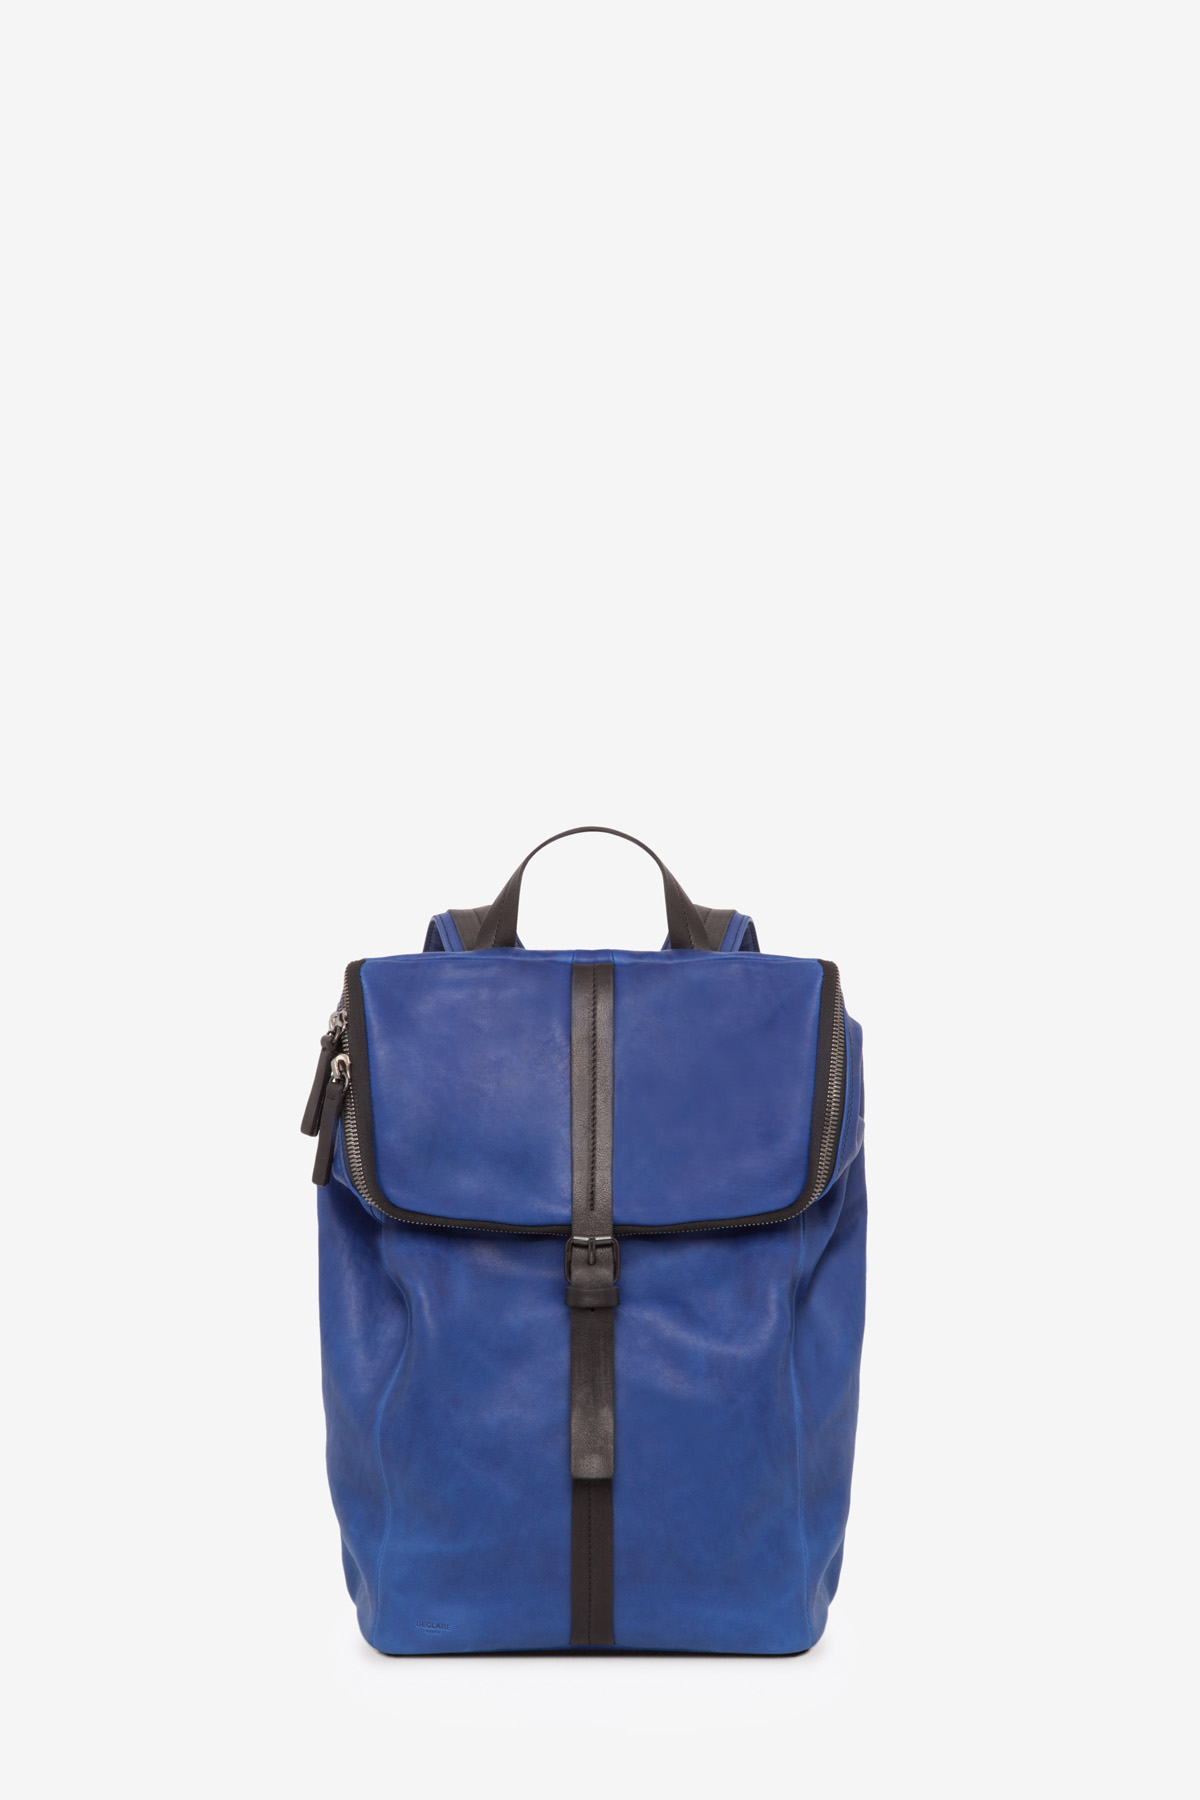 dclr011-backpack-a20-royalblue-front